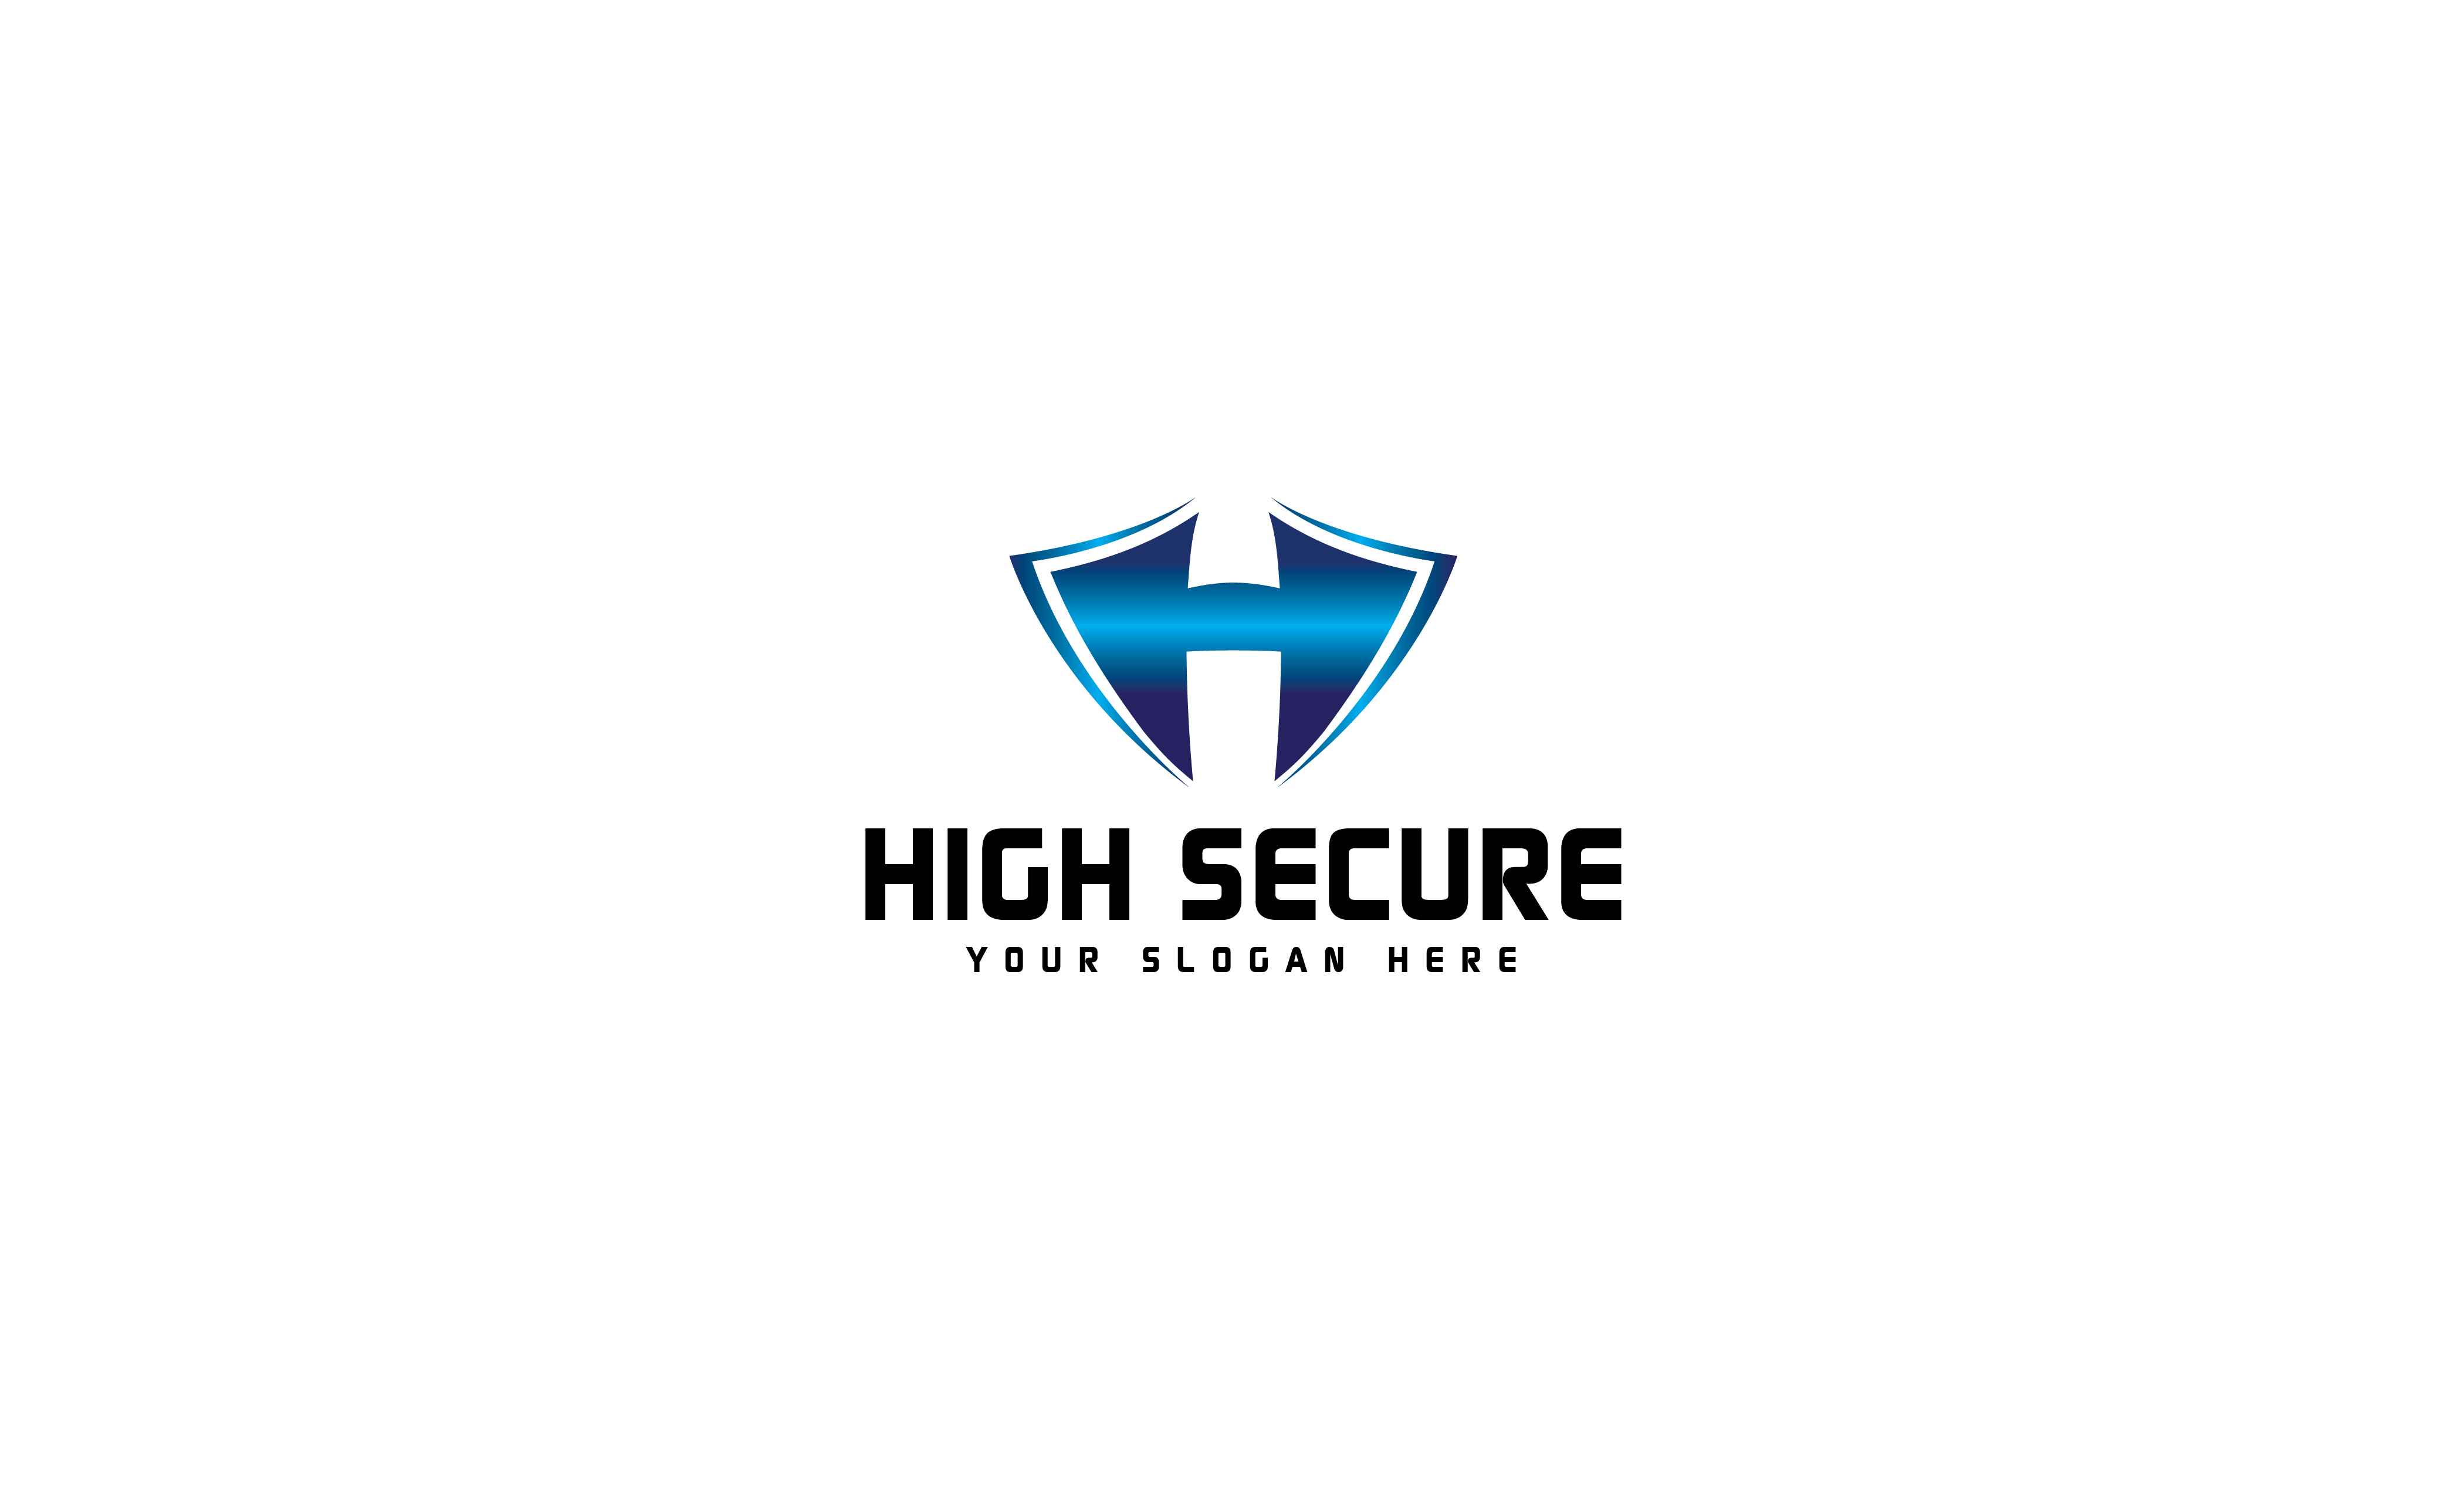 HighSecure Logo by Theuniquestudios  a perfect logo for Security